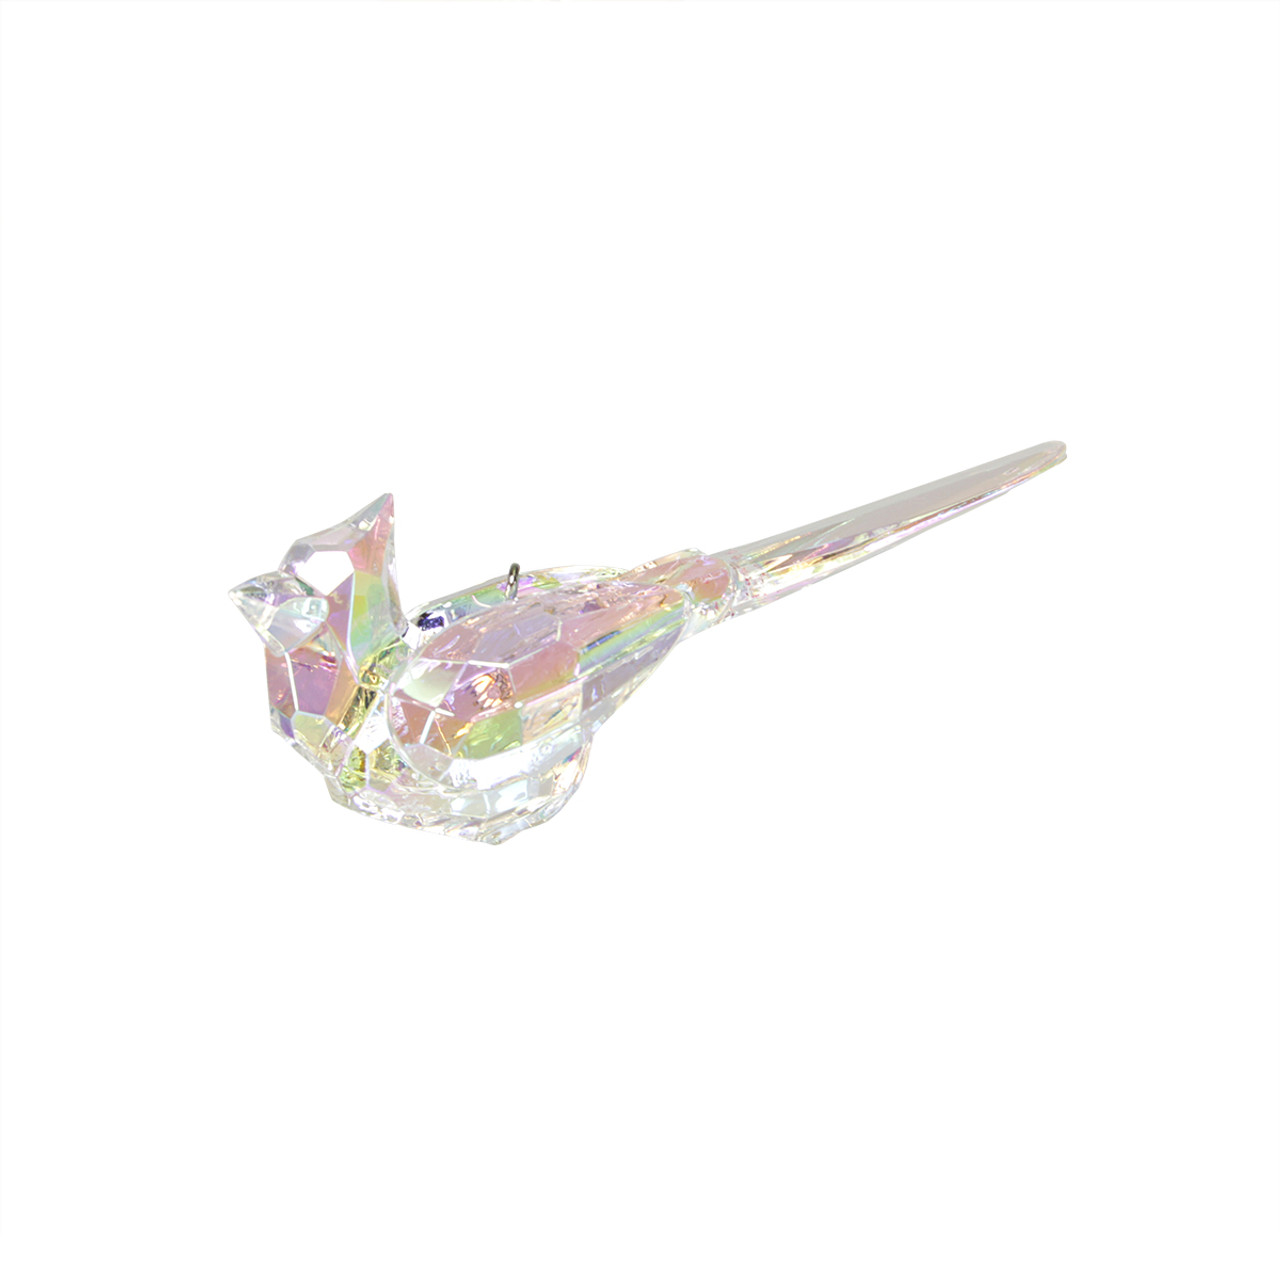 Christmas Great Egret Bird Star Religious Ornament: 4.25 Icy Crystal Refined Cardinal Bird Christmas Ornament